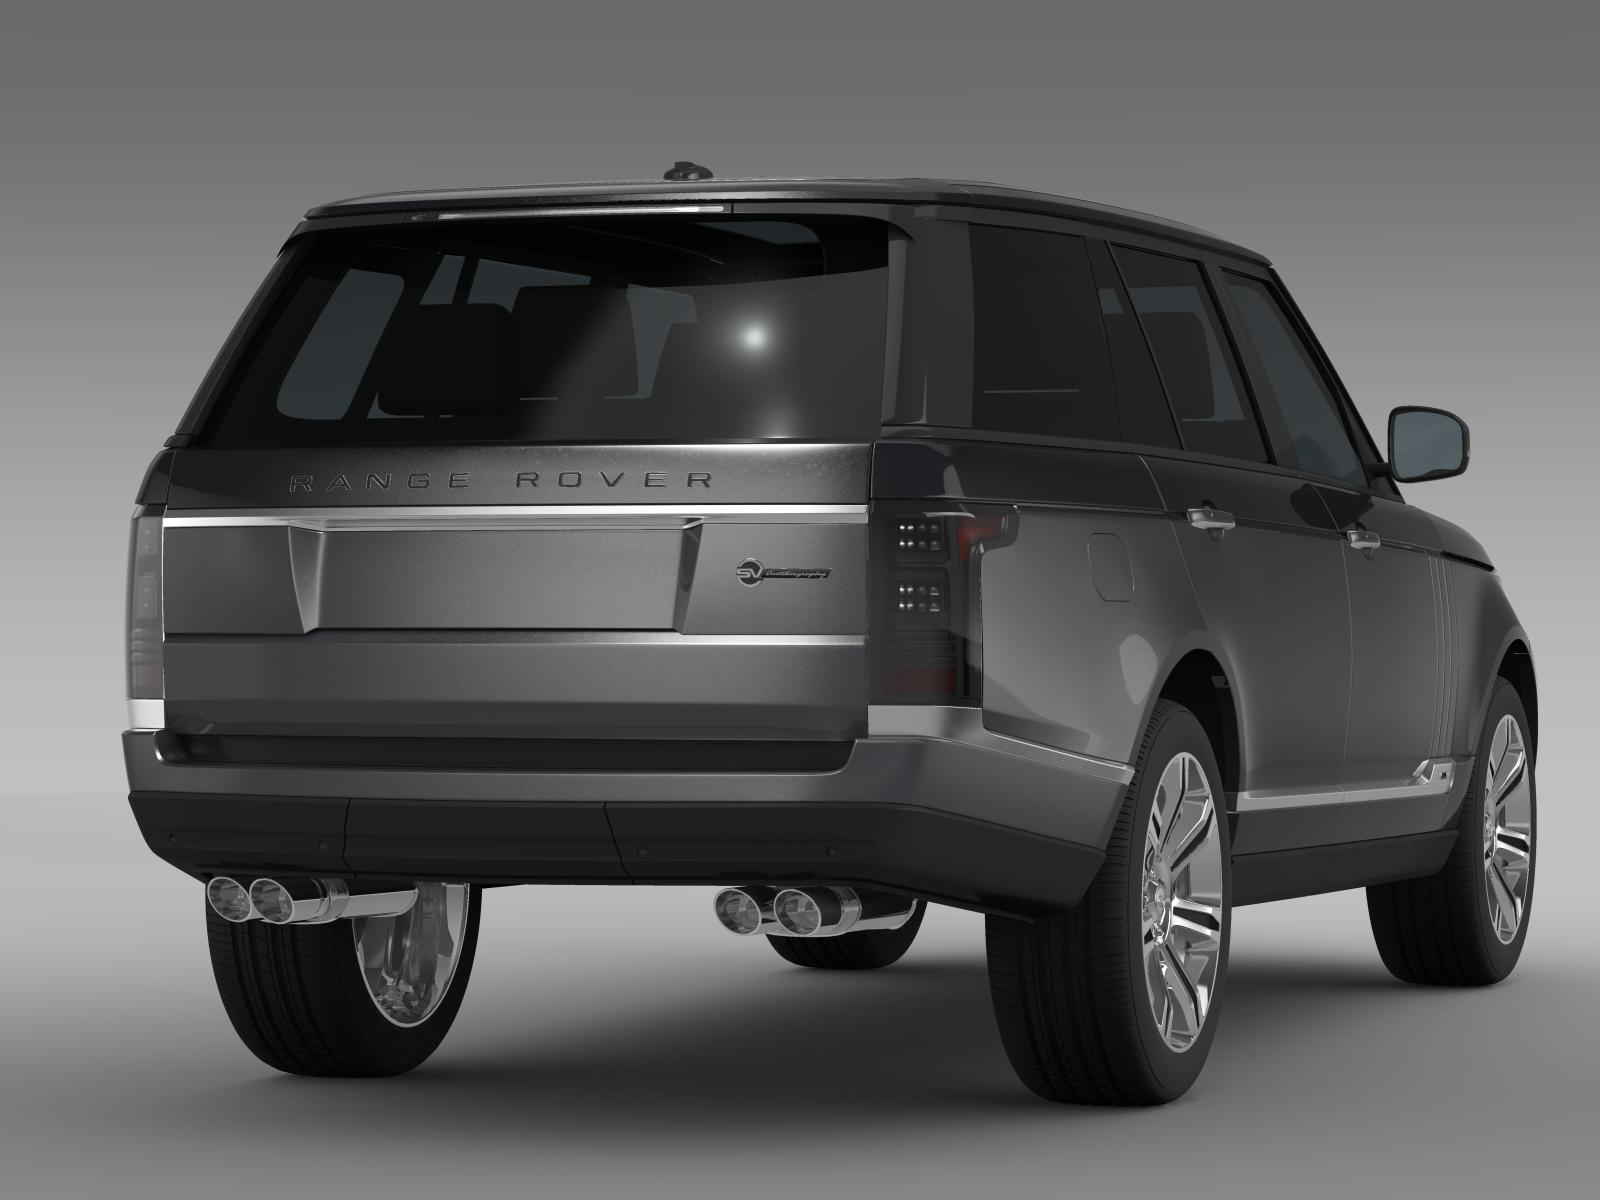 range rover svautobiography l405 2016 3d model buy range rover svautobiography l405 2016 3d. Black Bedroom Furniture Sets. Home Design Ideas